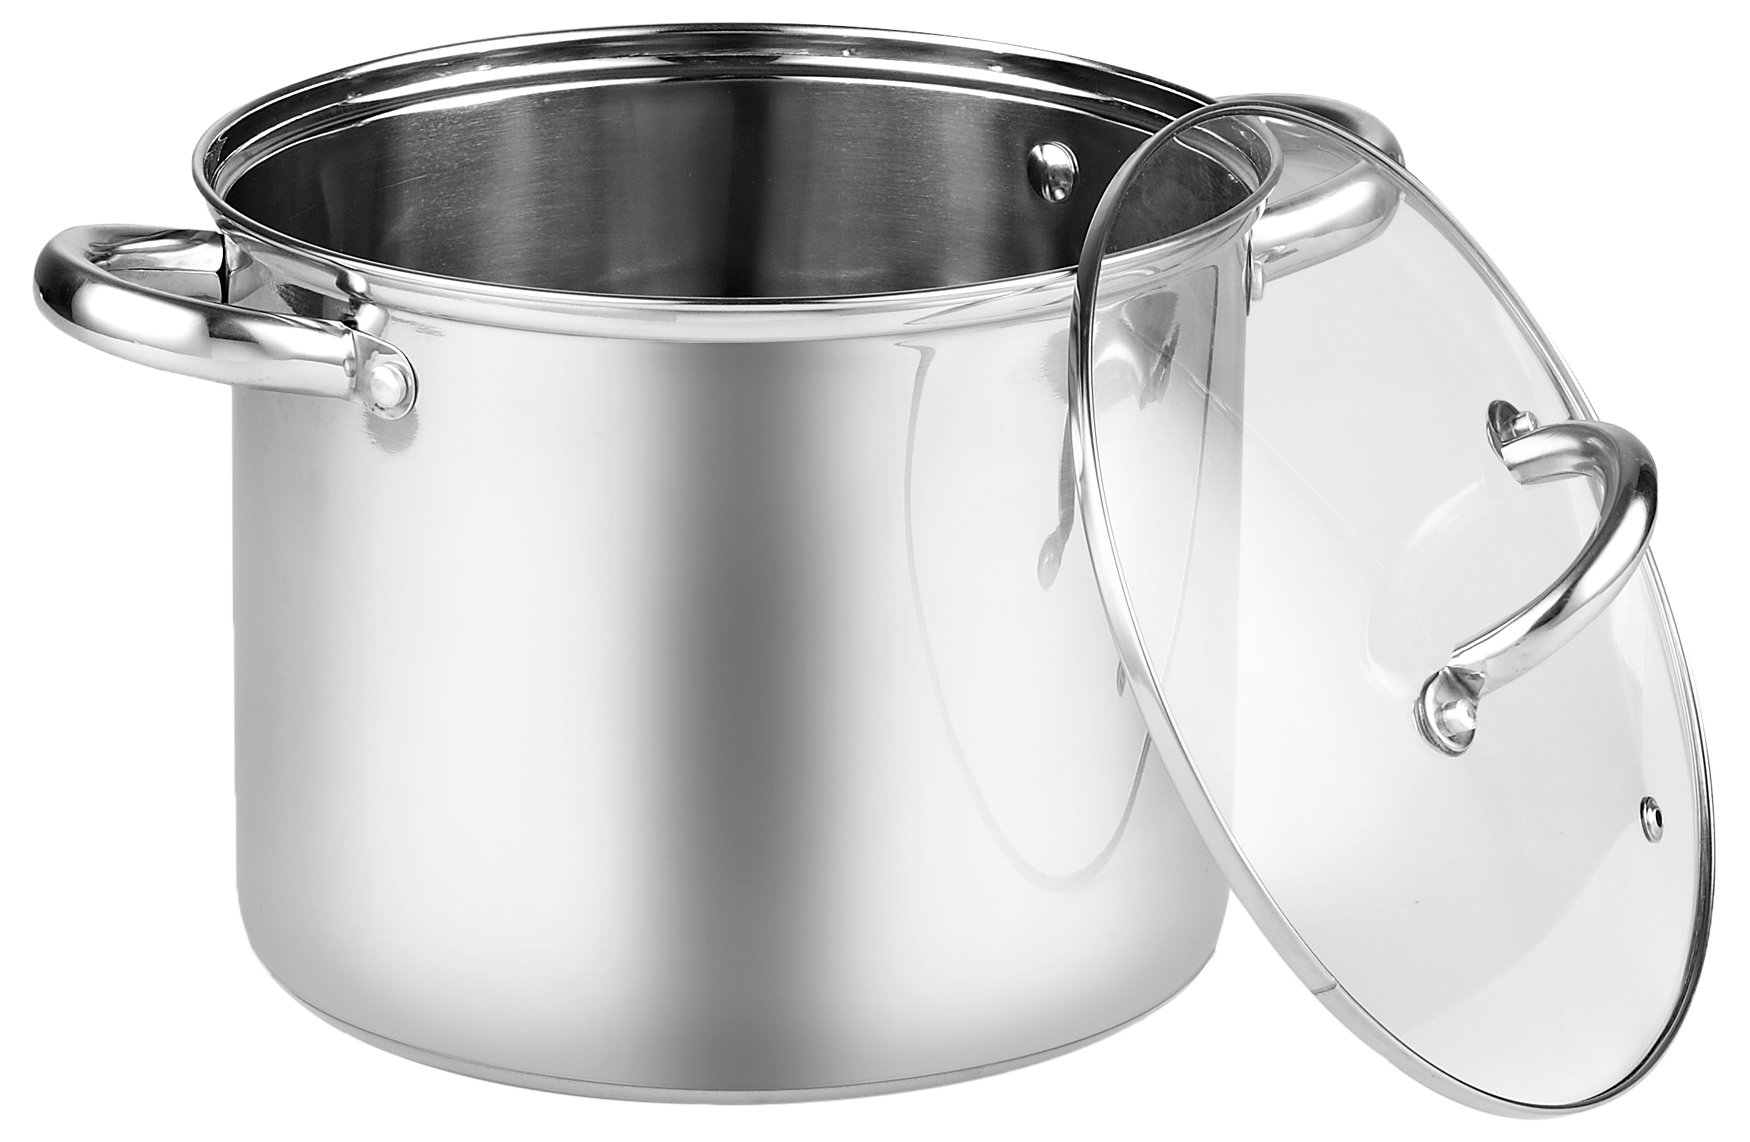 Cook N Home 8 Quart Stainless Steel Stockpot with Lid by Cook N Home (Image #1)